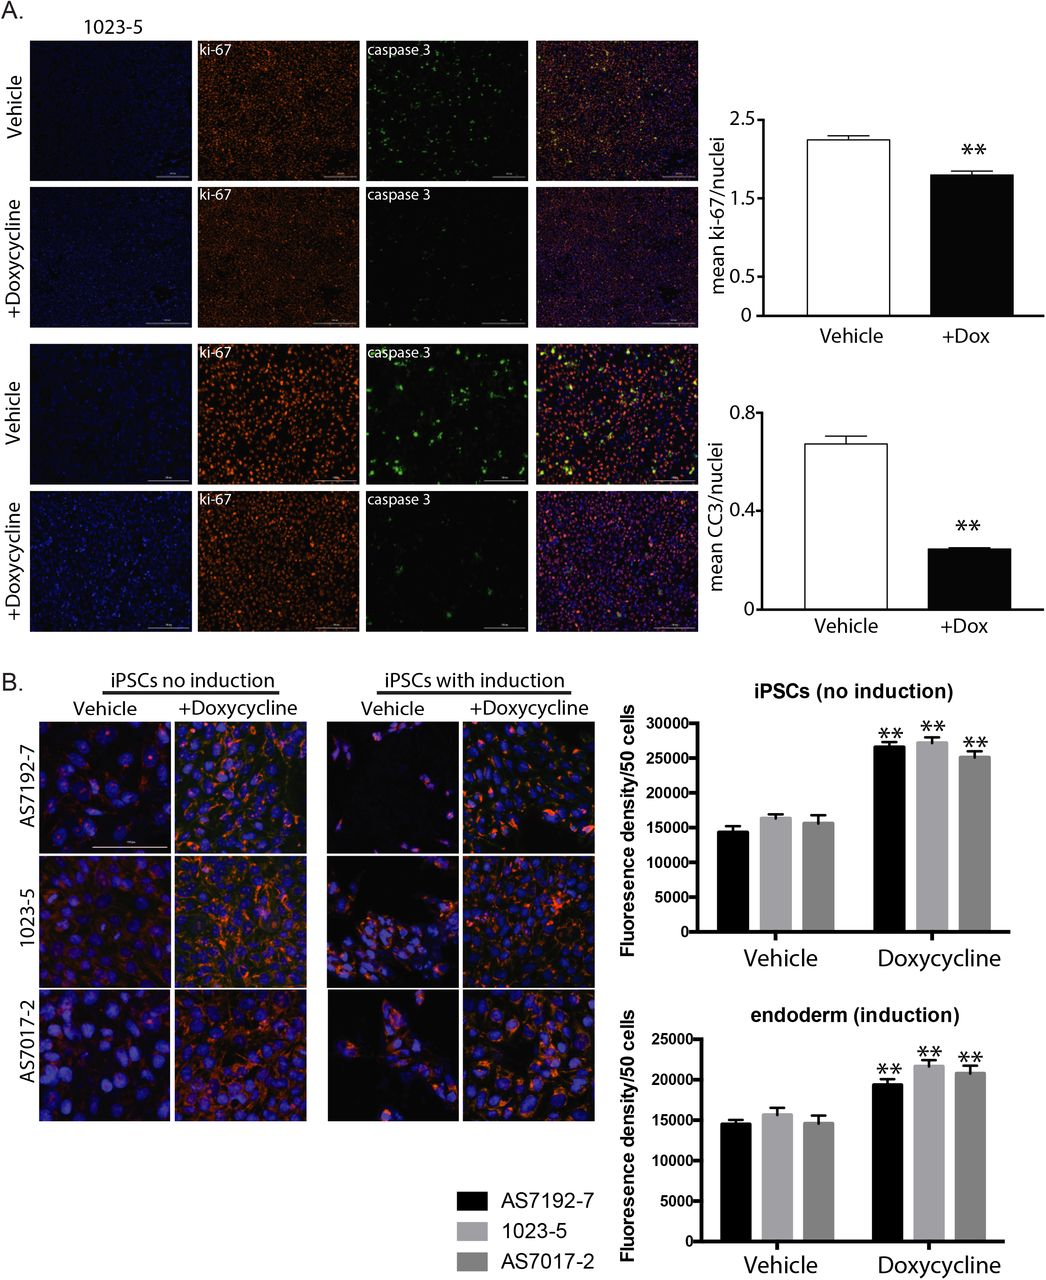 Doxycycline Reduces Apoptosis and Increases Mitochondrial Mass (A) Immunofluorescence of iPSC line 1023-5 on day 2 of induction for Hoechst 33342, Ki-67, Cleaved Caspase 3 (CC3), and combined shows greatly decreased CC3 staining with doxycycline treatment. At this early time point, there is a small but significant decrease in Ki-67. First two rows are 10x with scale bar at 400μm and bottom two rows 20x with 200μm scale bar. (B) Mitotracker Orange staining of iPSCs with no induction and with induction shows that addition of Doxycycline increases the quantity of polarized mitochondria compared to vehicle alone in three separate iPSC lines (AS7192-7, 1023-5, and AS7017-2) (n=3). Scale bar represents 100μm. Data were analyzed by Student's t test and presented as mean ± SEM. * p